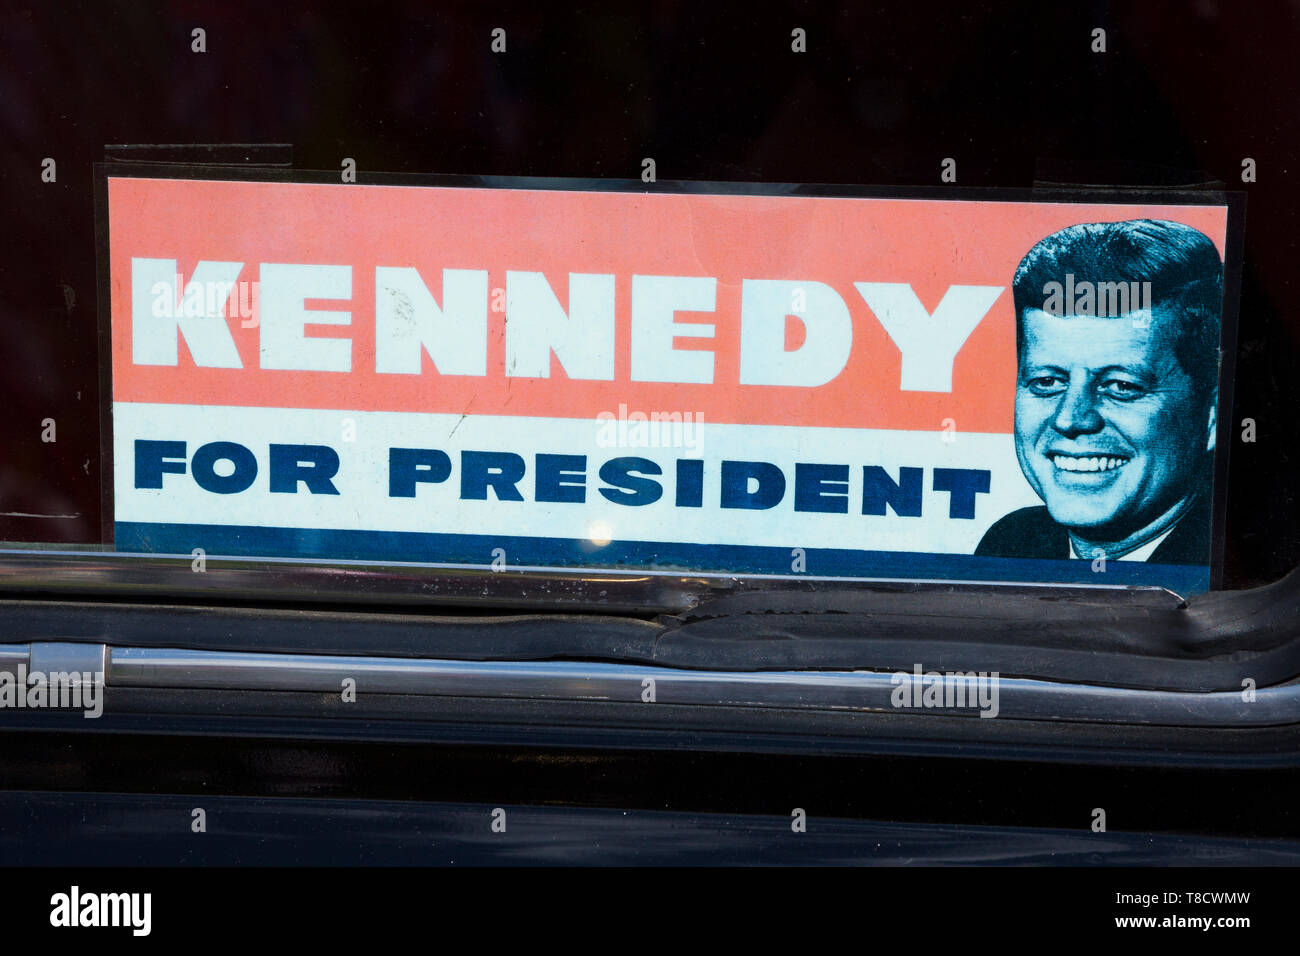 Period vote for kennedy john f kennedy to be us president for president of the usa window sticker in a vintage car as a rally in the uk